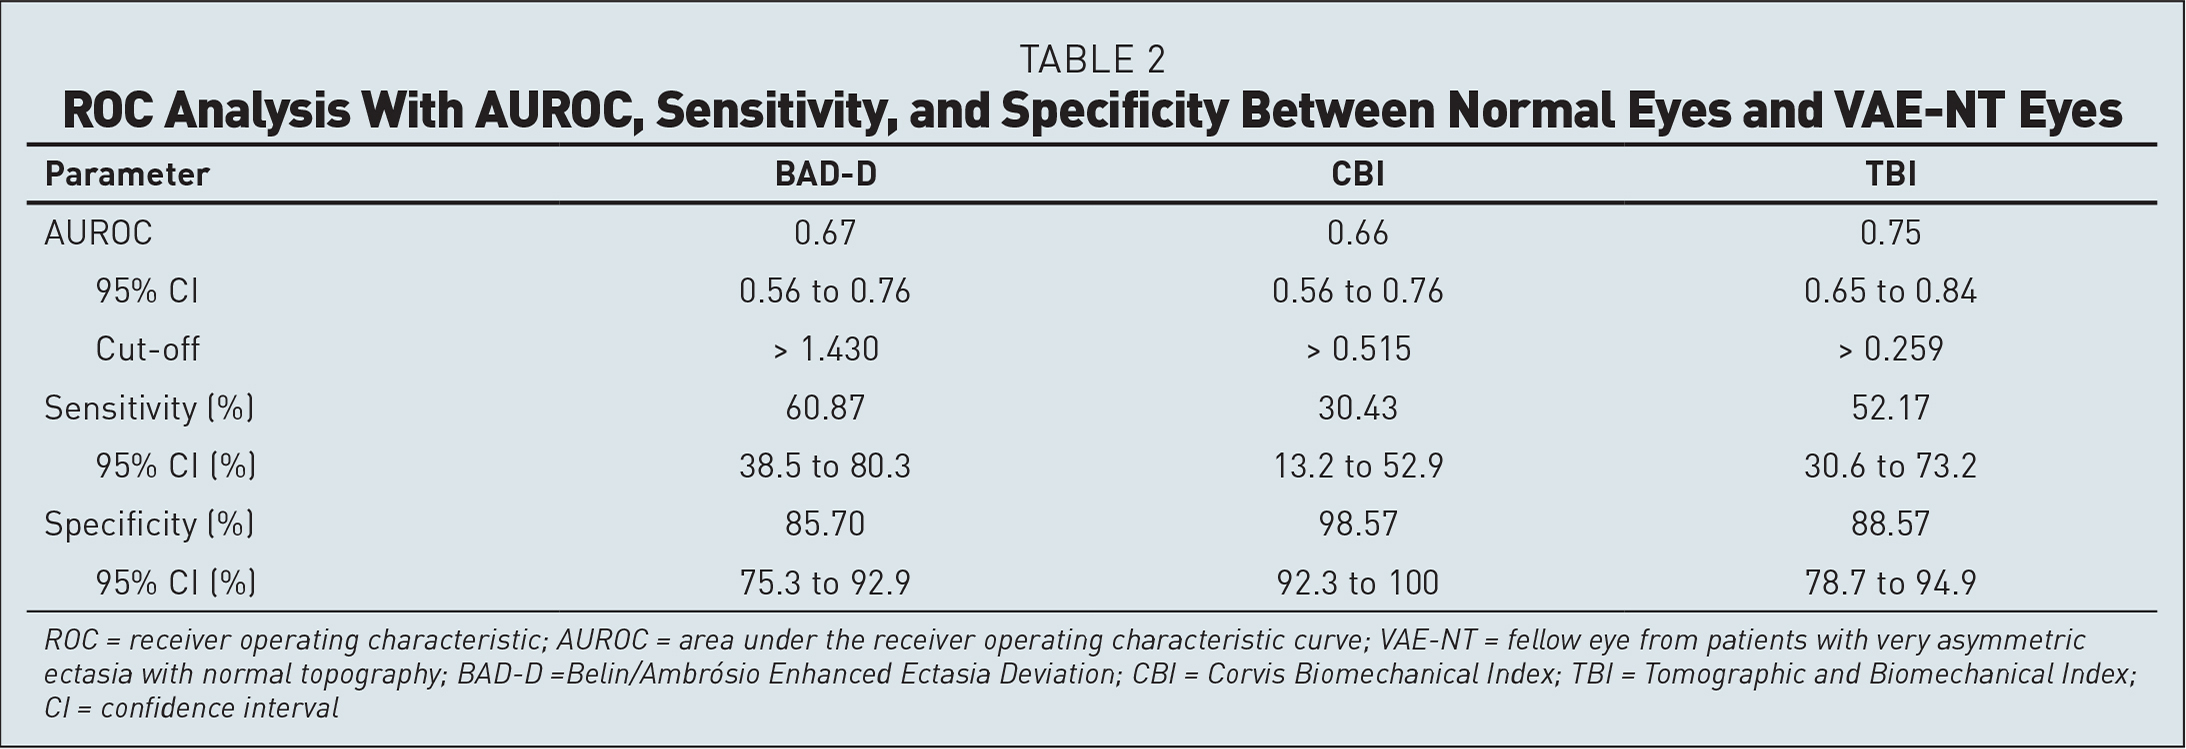 ROC Analysis With AUROC, Sensitivity, and Specificity Between Normal Eyes and VAE-NT Eyes